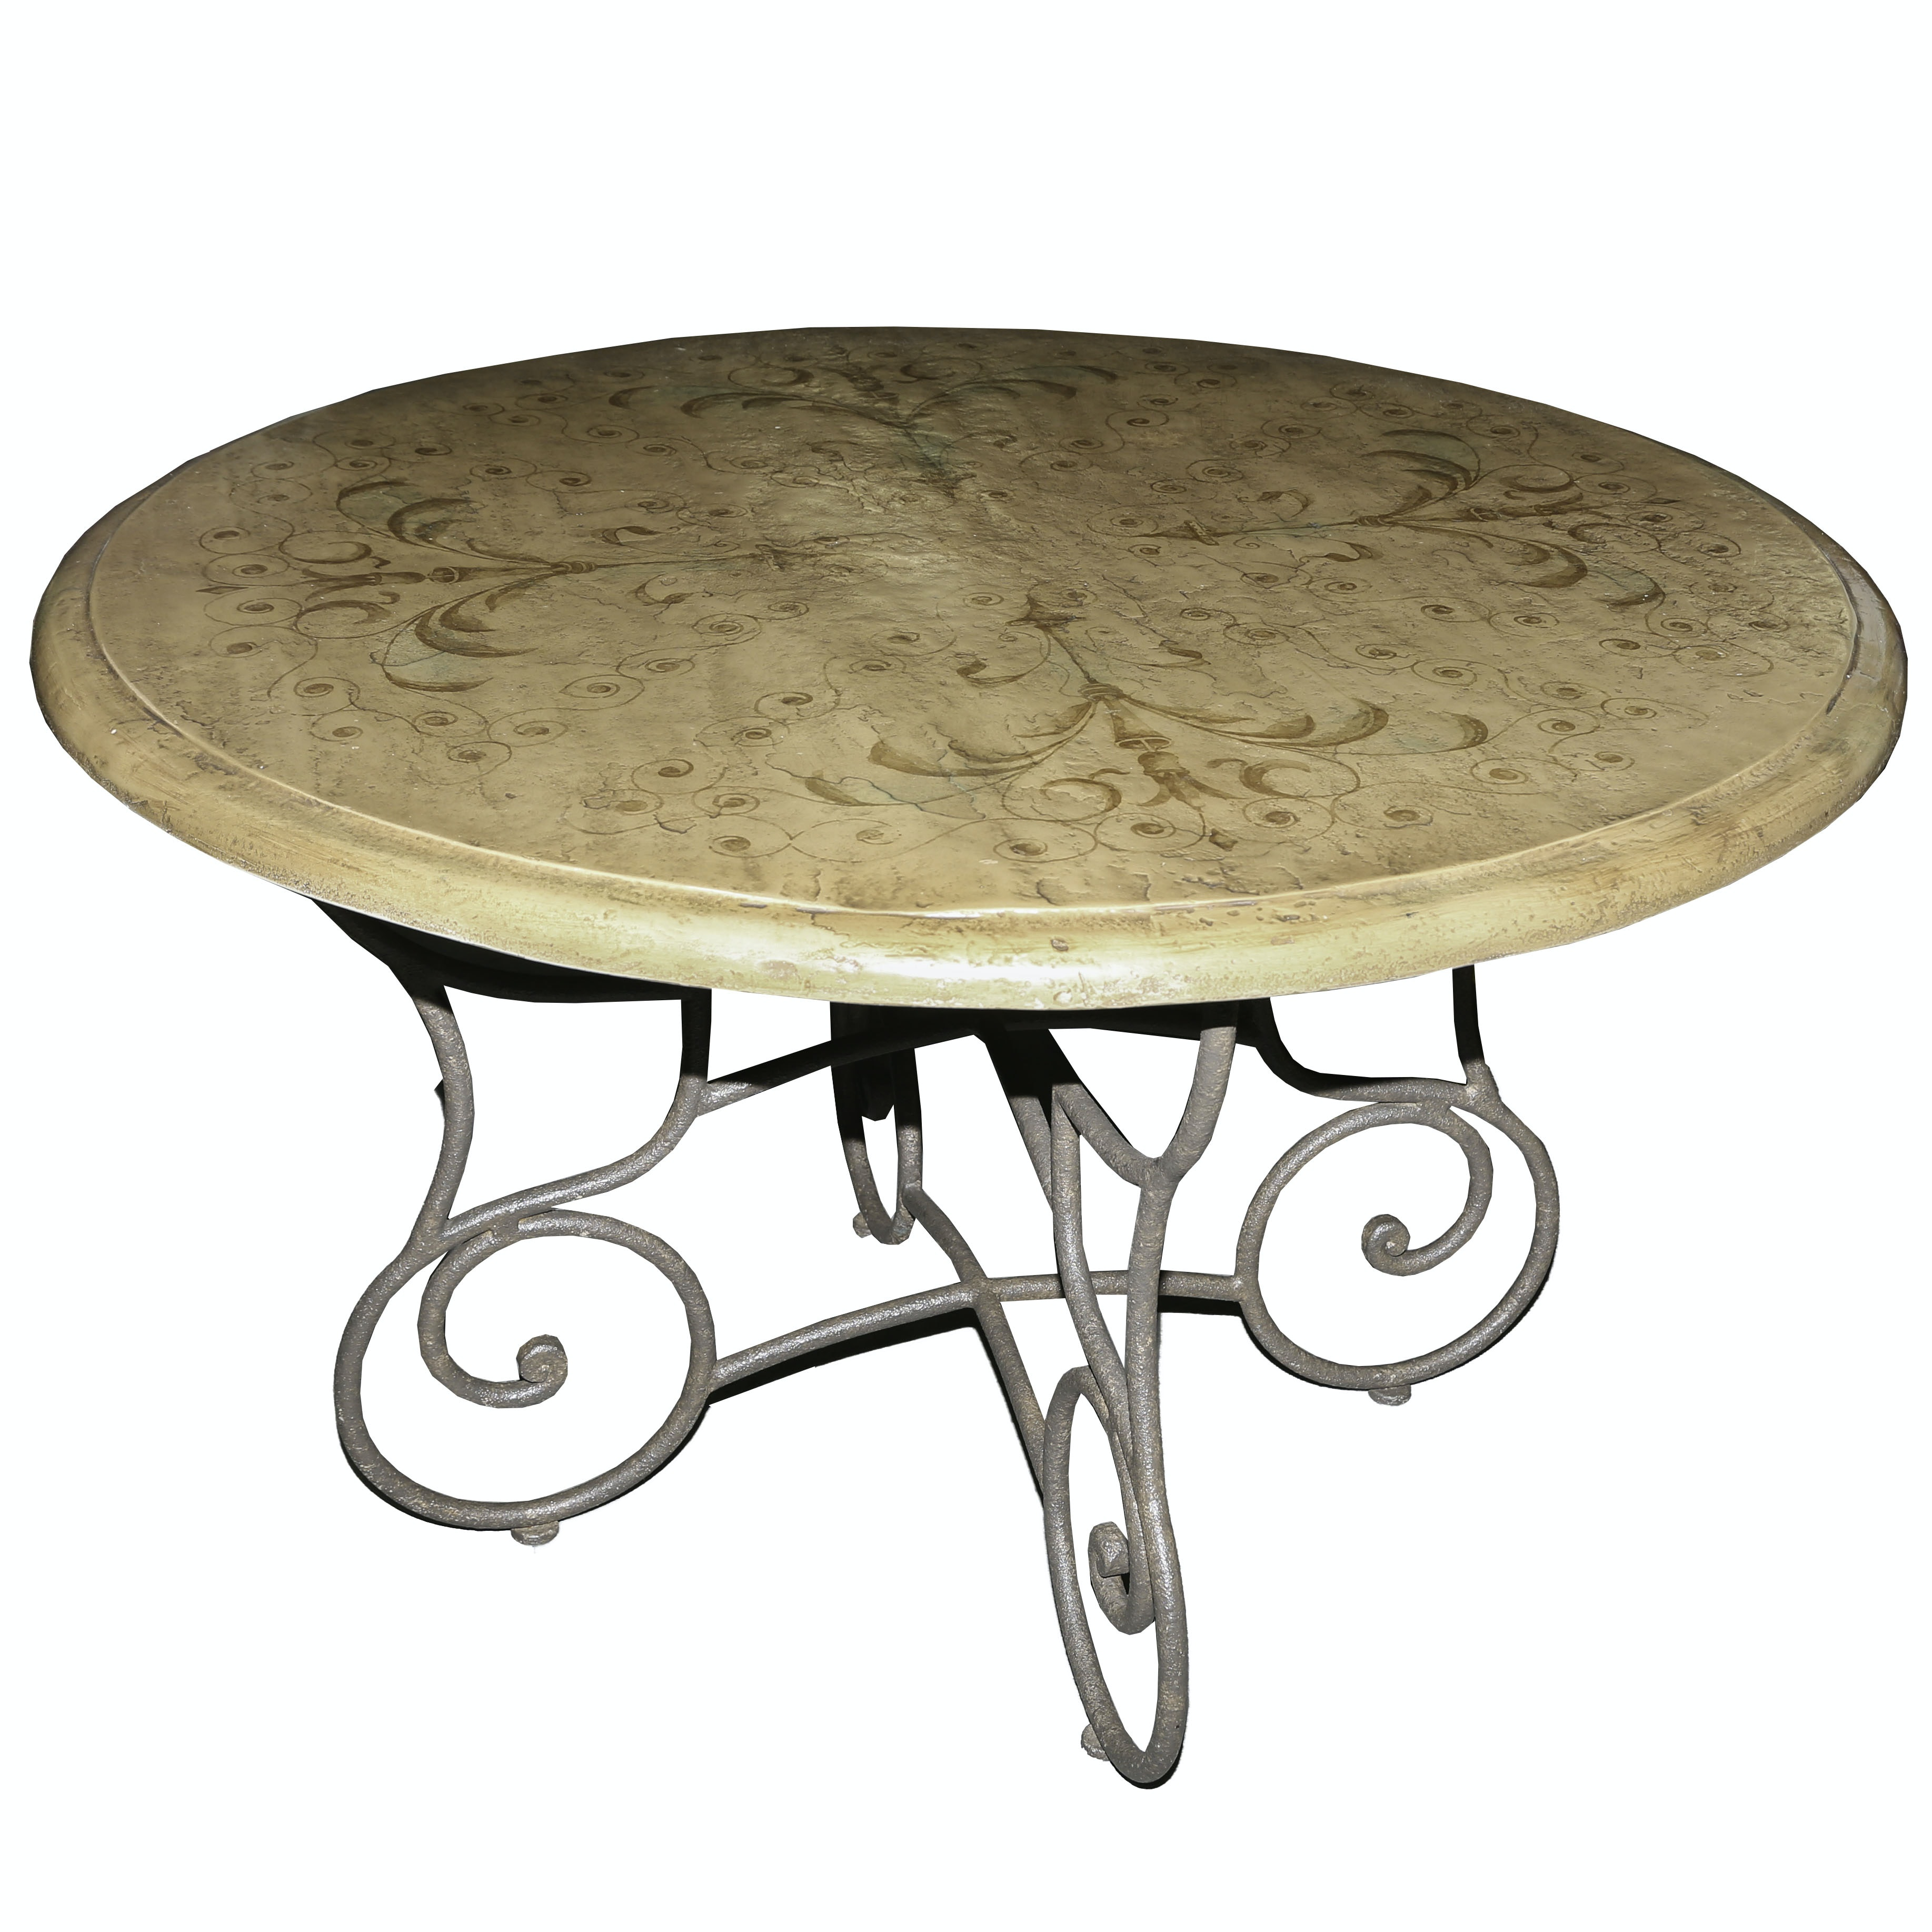 Neoclassical Inspired Dining Table with Iron Base